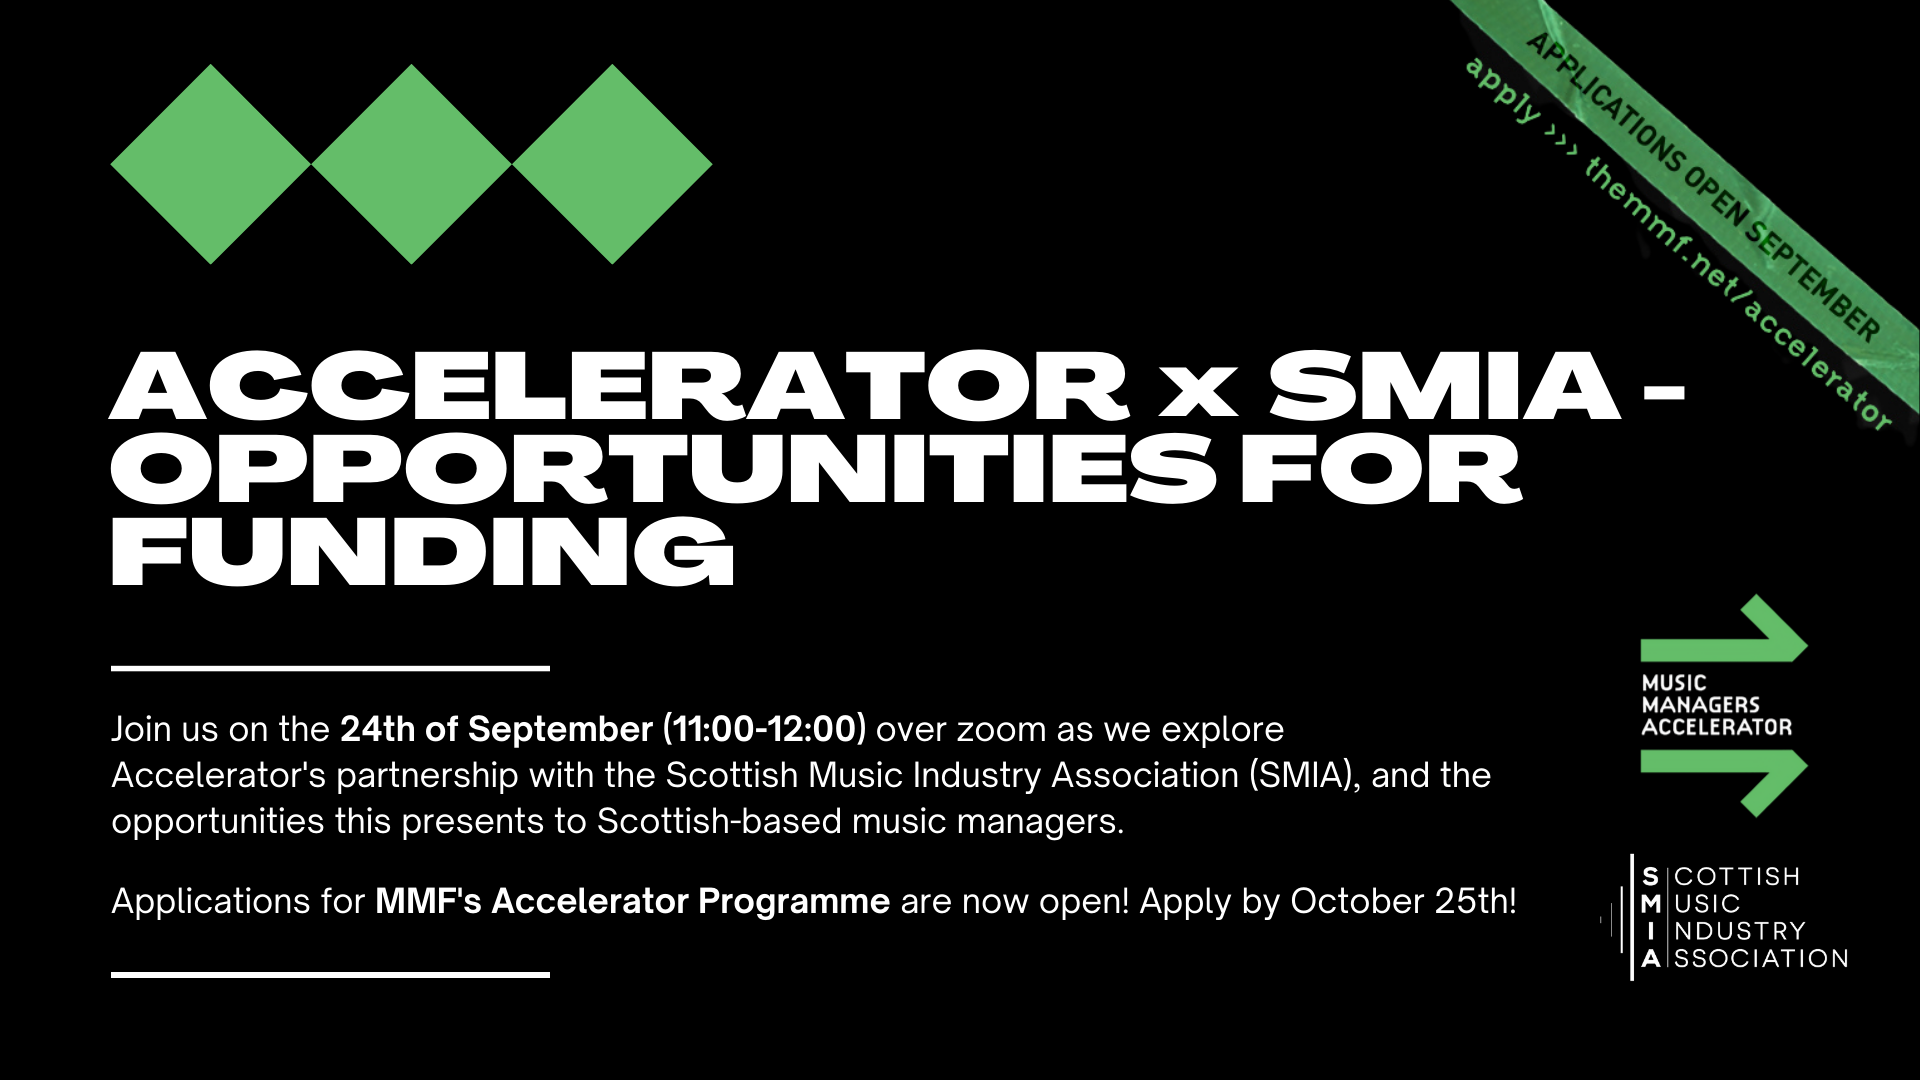 MMF Accelerator x SMIA - Opportunities for Funding - Online event on Friday 24:09:21 from 11am